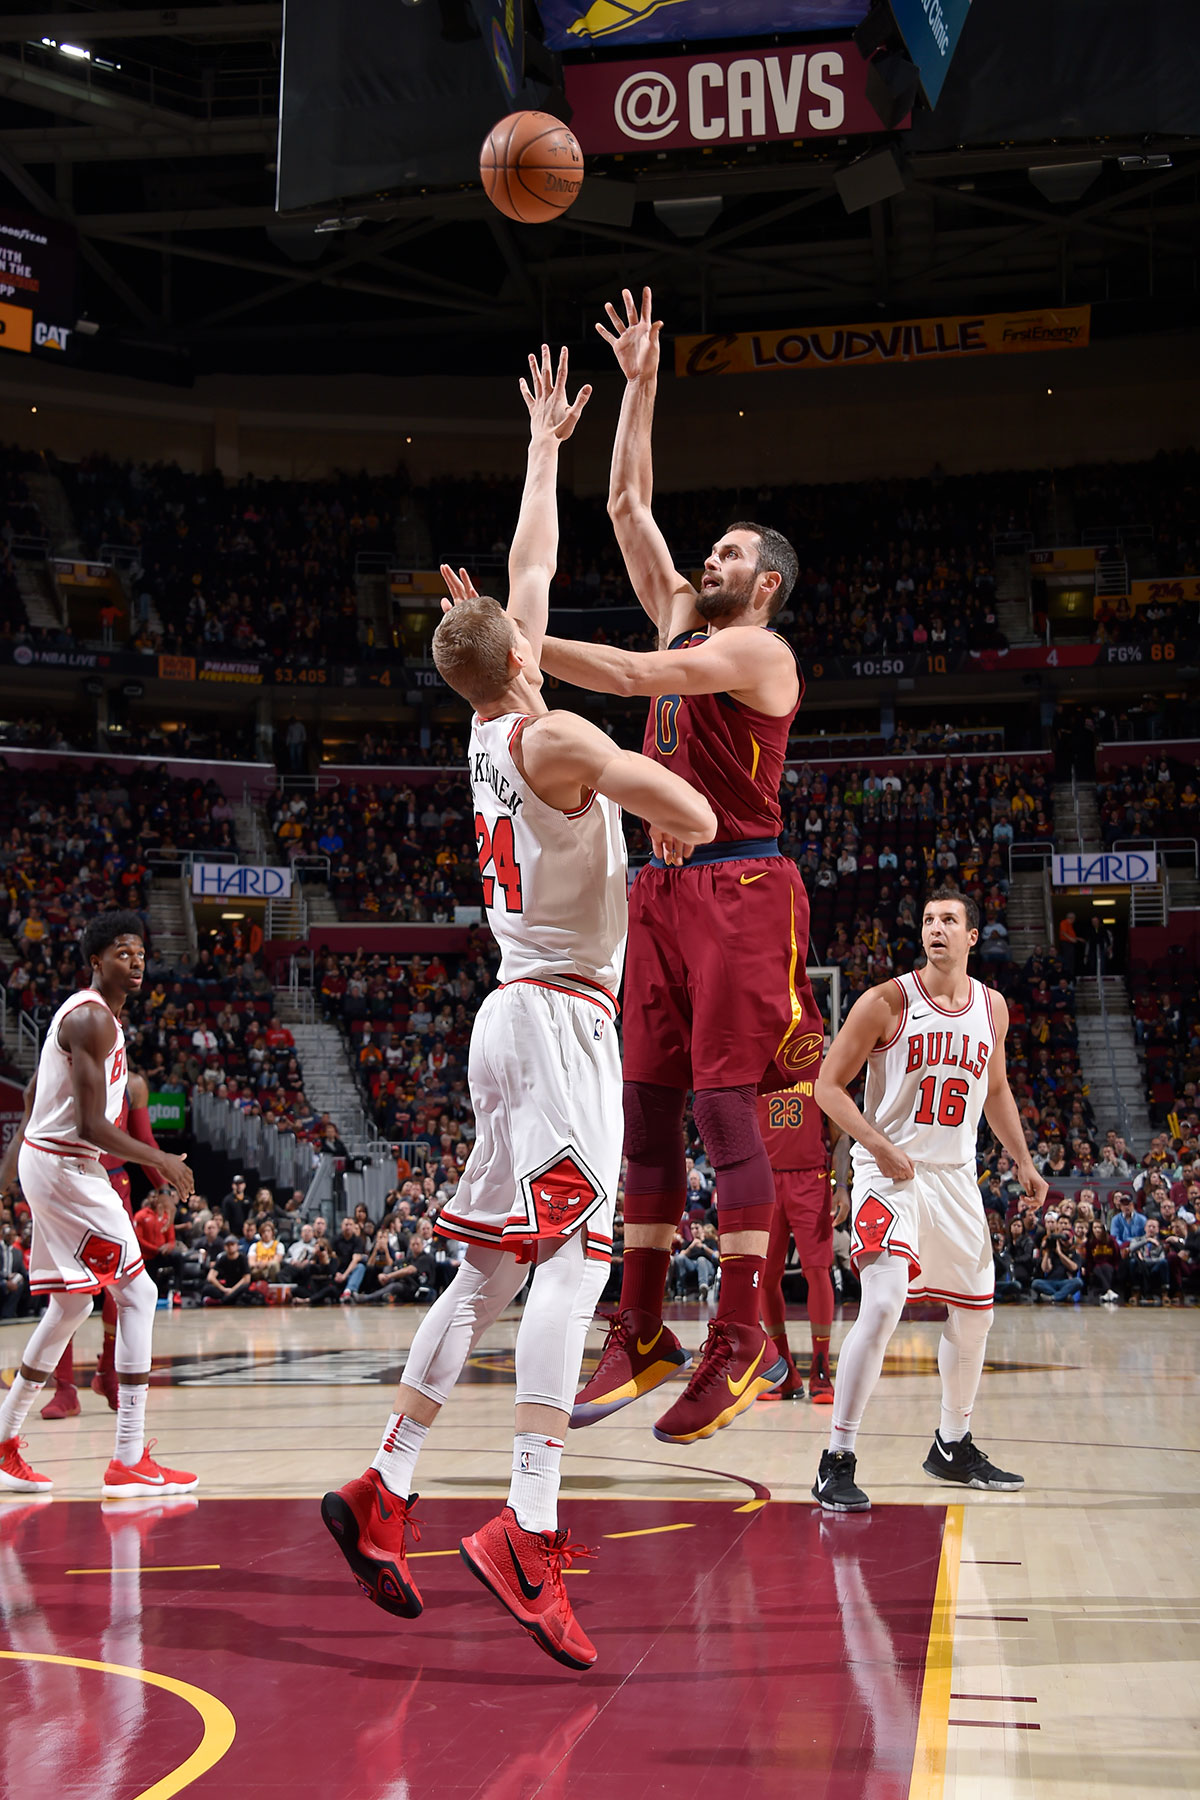 Lauri Markkanen #24 of the Chicago Bulls and Kevin Love #0 of the Cleveland Cavaliers tipoff at the beginning of the game on October 24, 2017 at Quicken Loans Arena in Cleveland, Ohio.